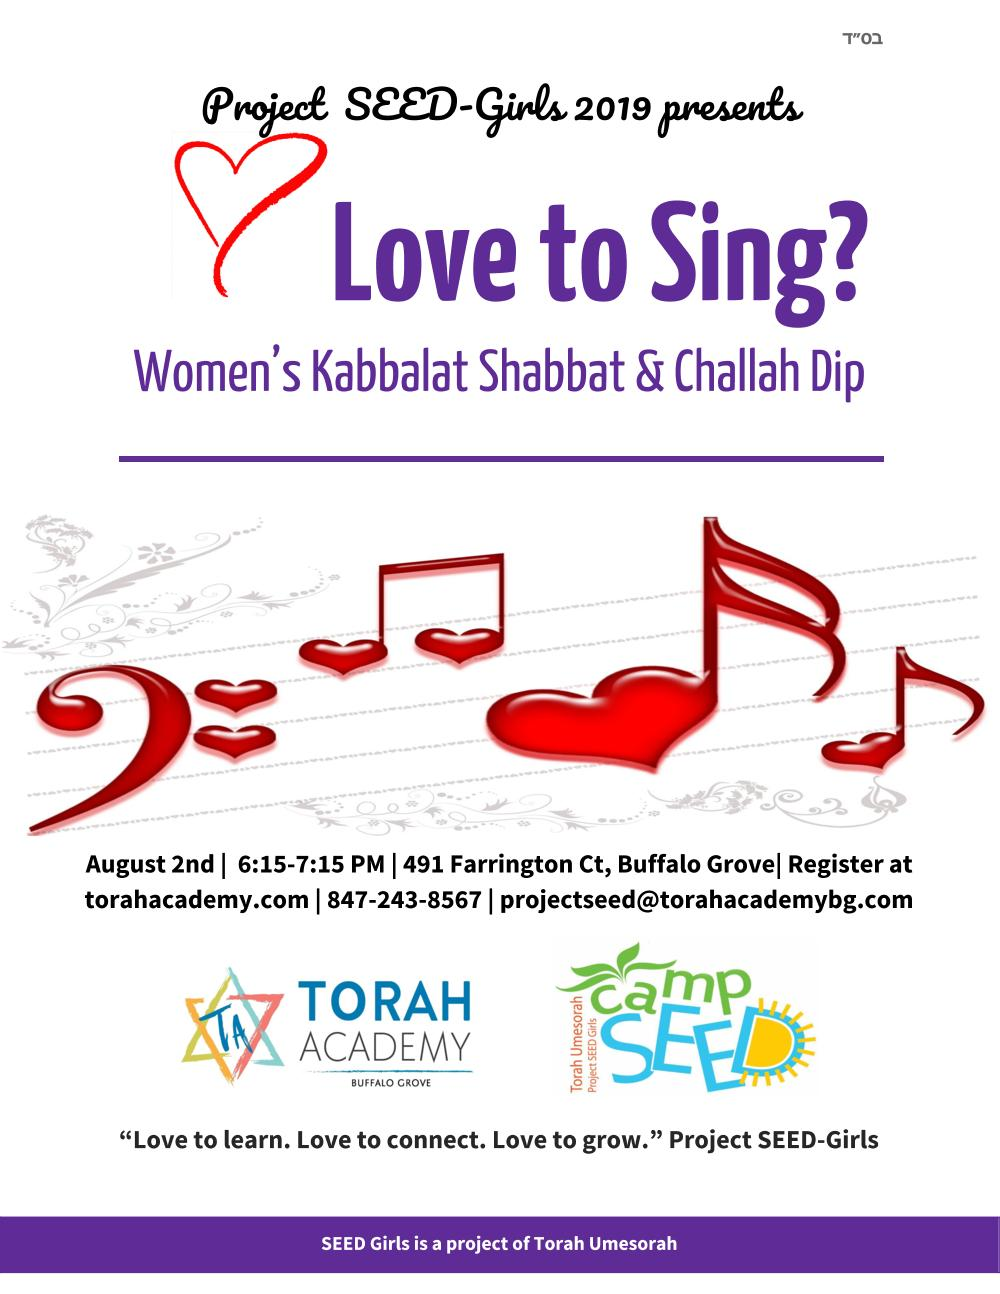 Before Shabbat begins, come share a multi-sensory Shabbat experience with us! Enjoy the sounds and tastes of Shabbat!